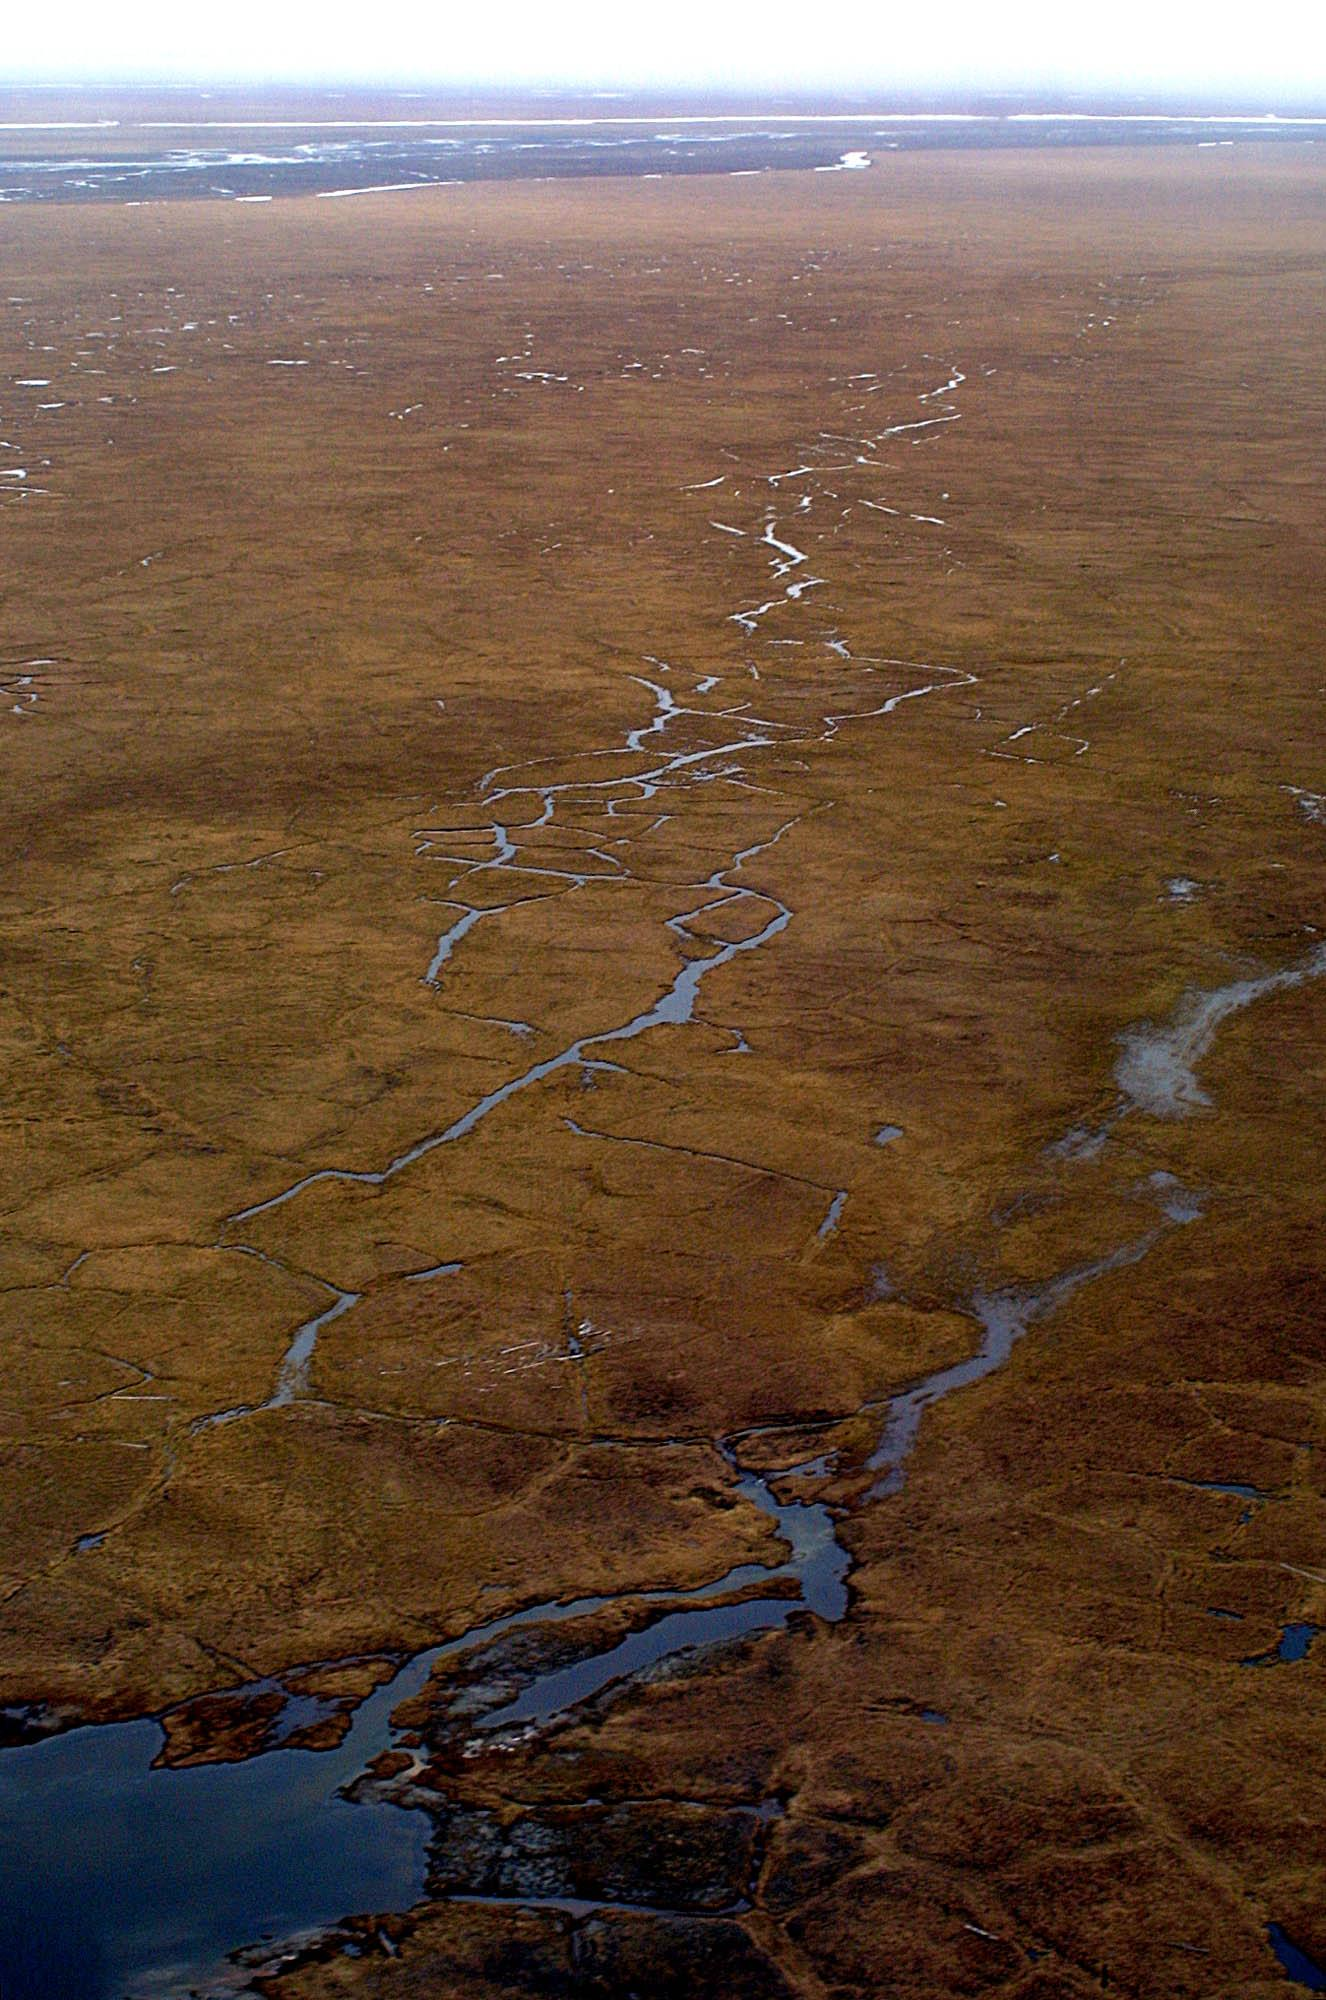 Obama to seek wilderness designation for Alaska refuge